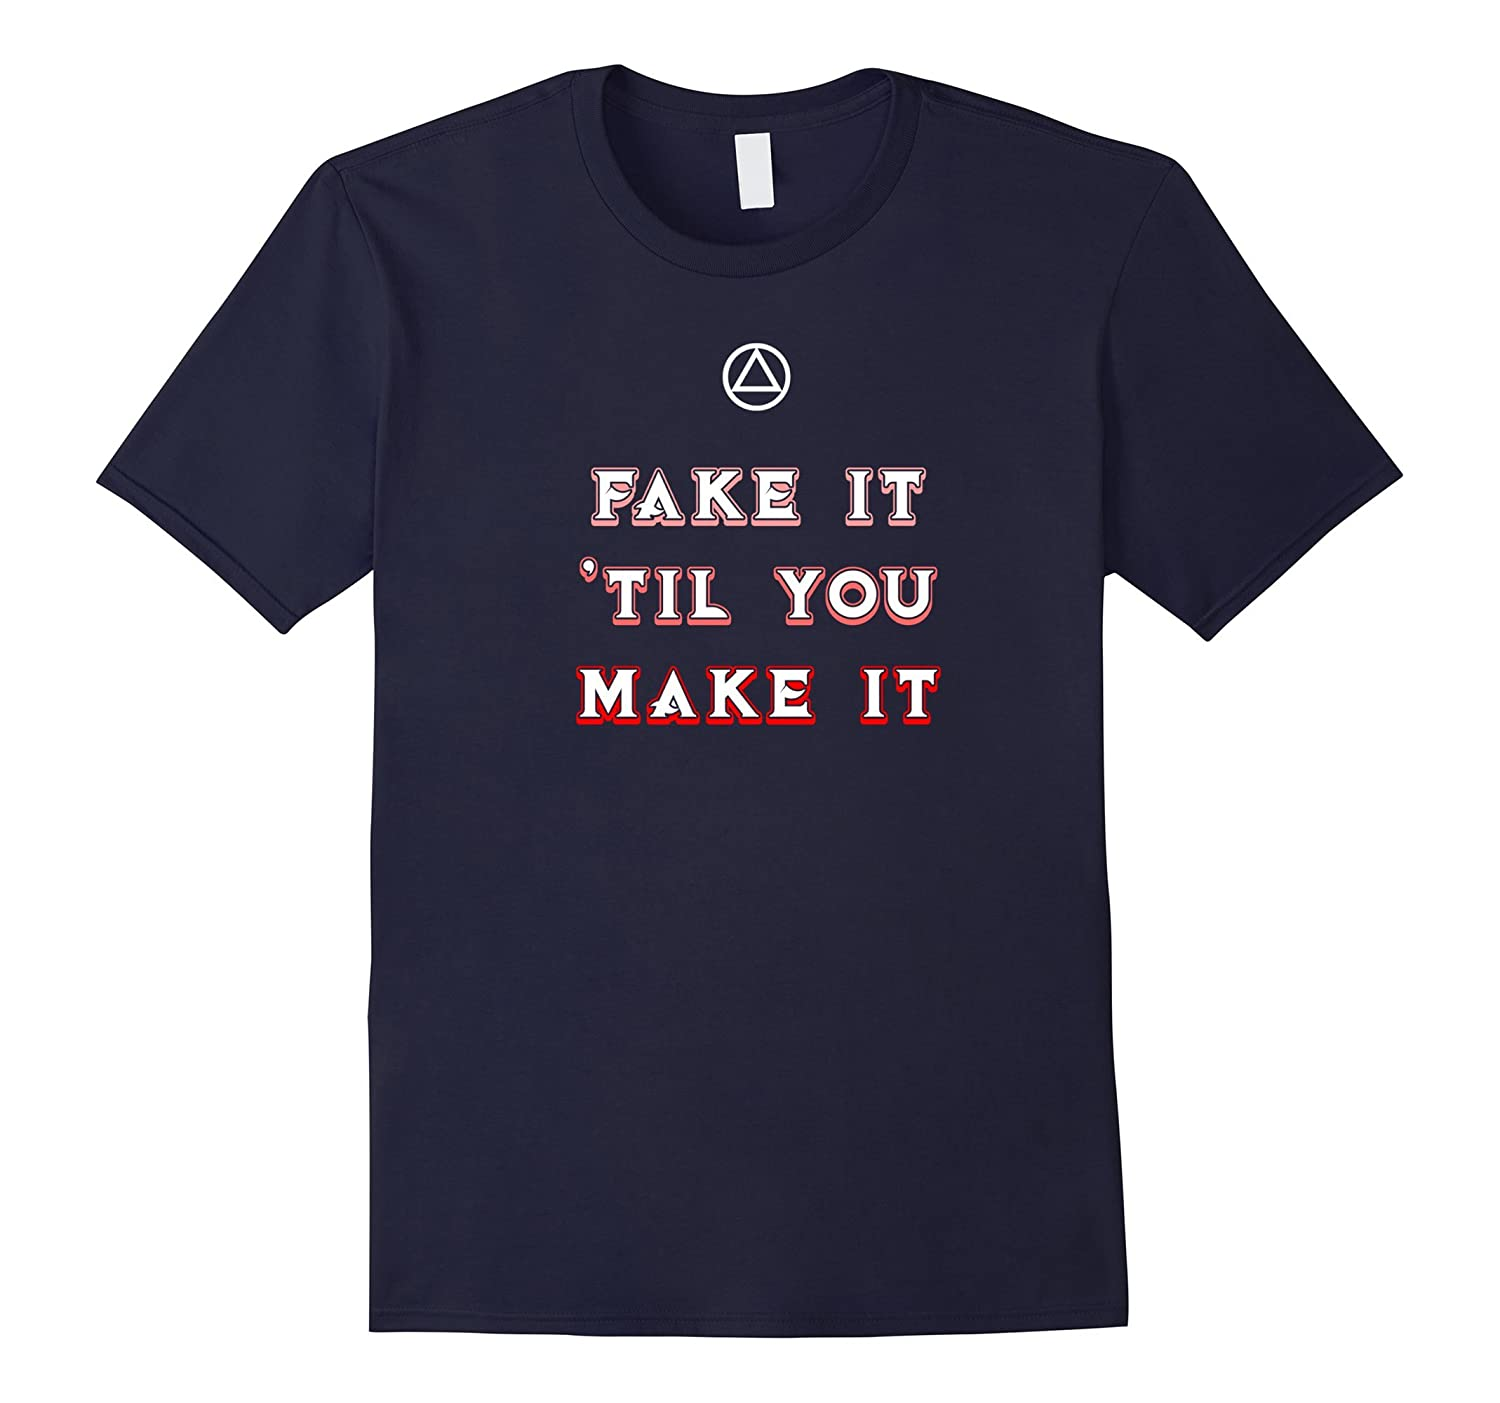 'Fake It 'Til You Make It' – Funny AA Recovery T-Shirt